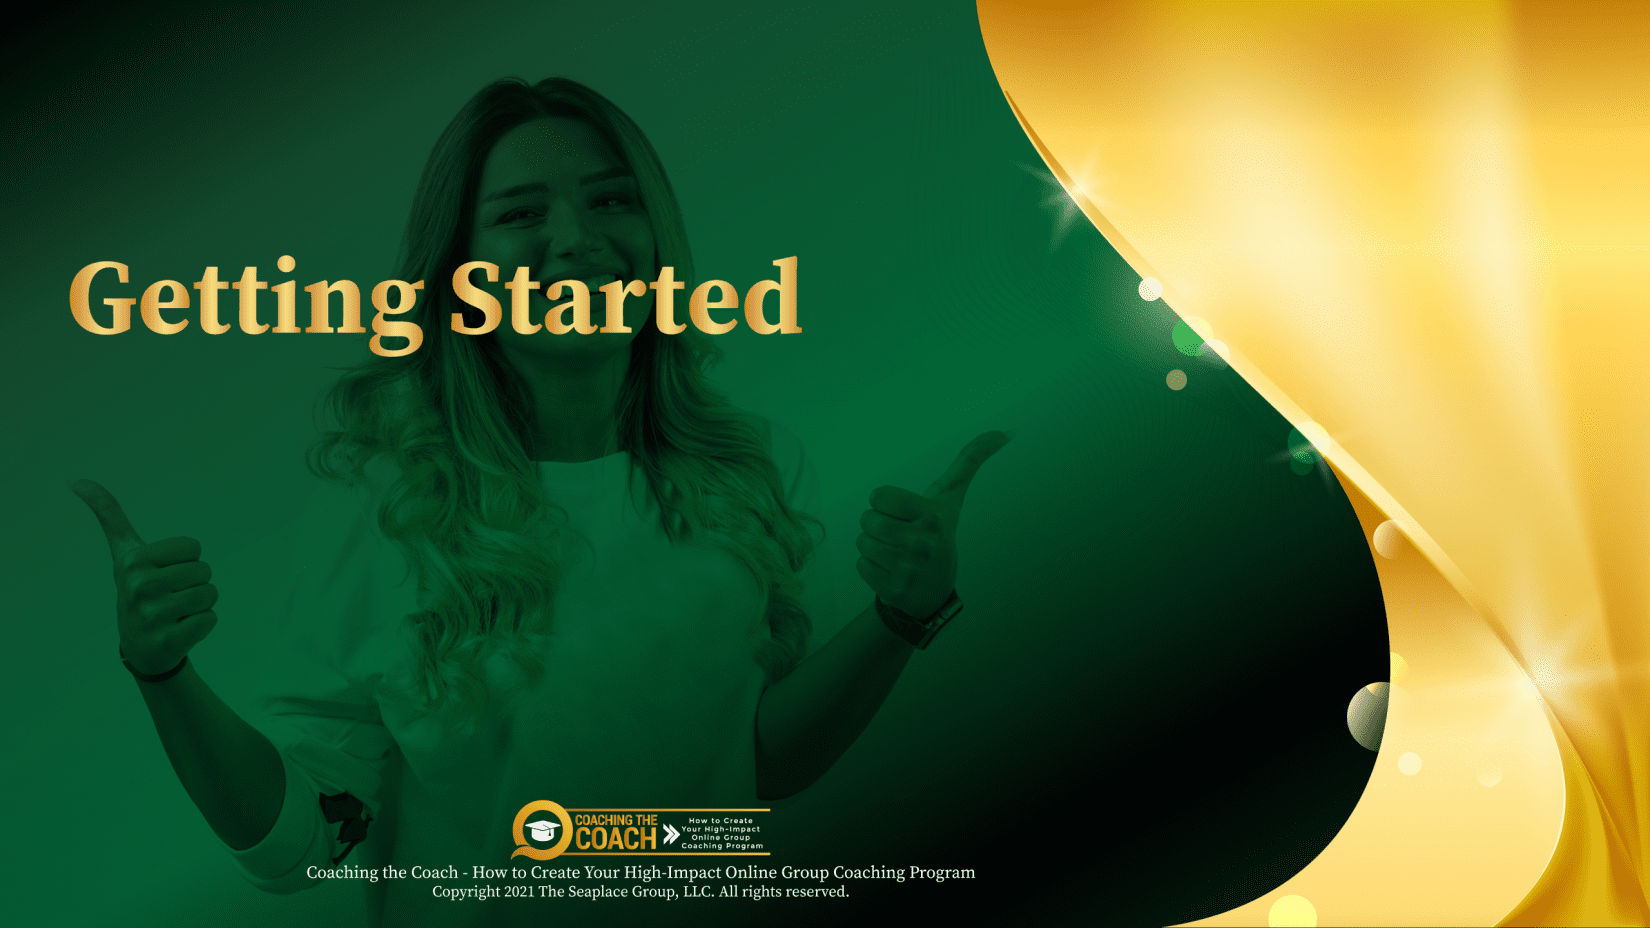 Getting Started Cover Image